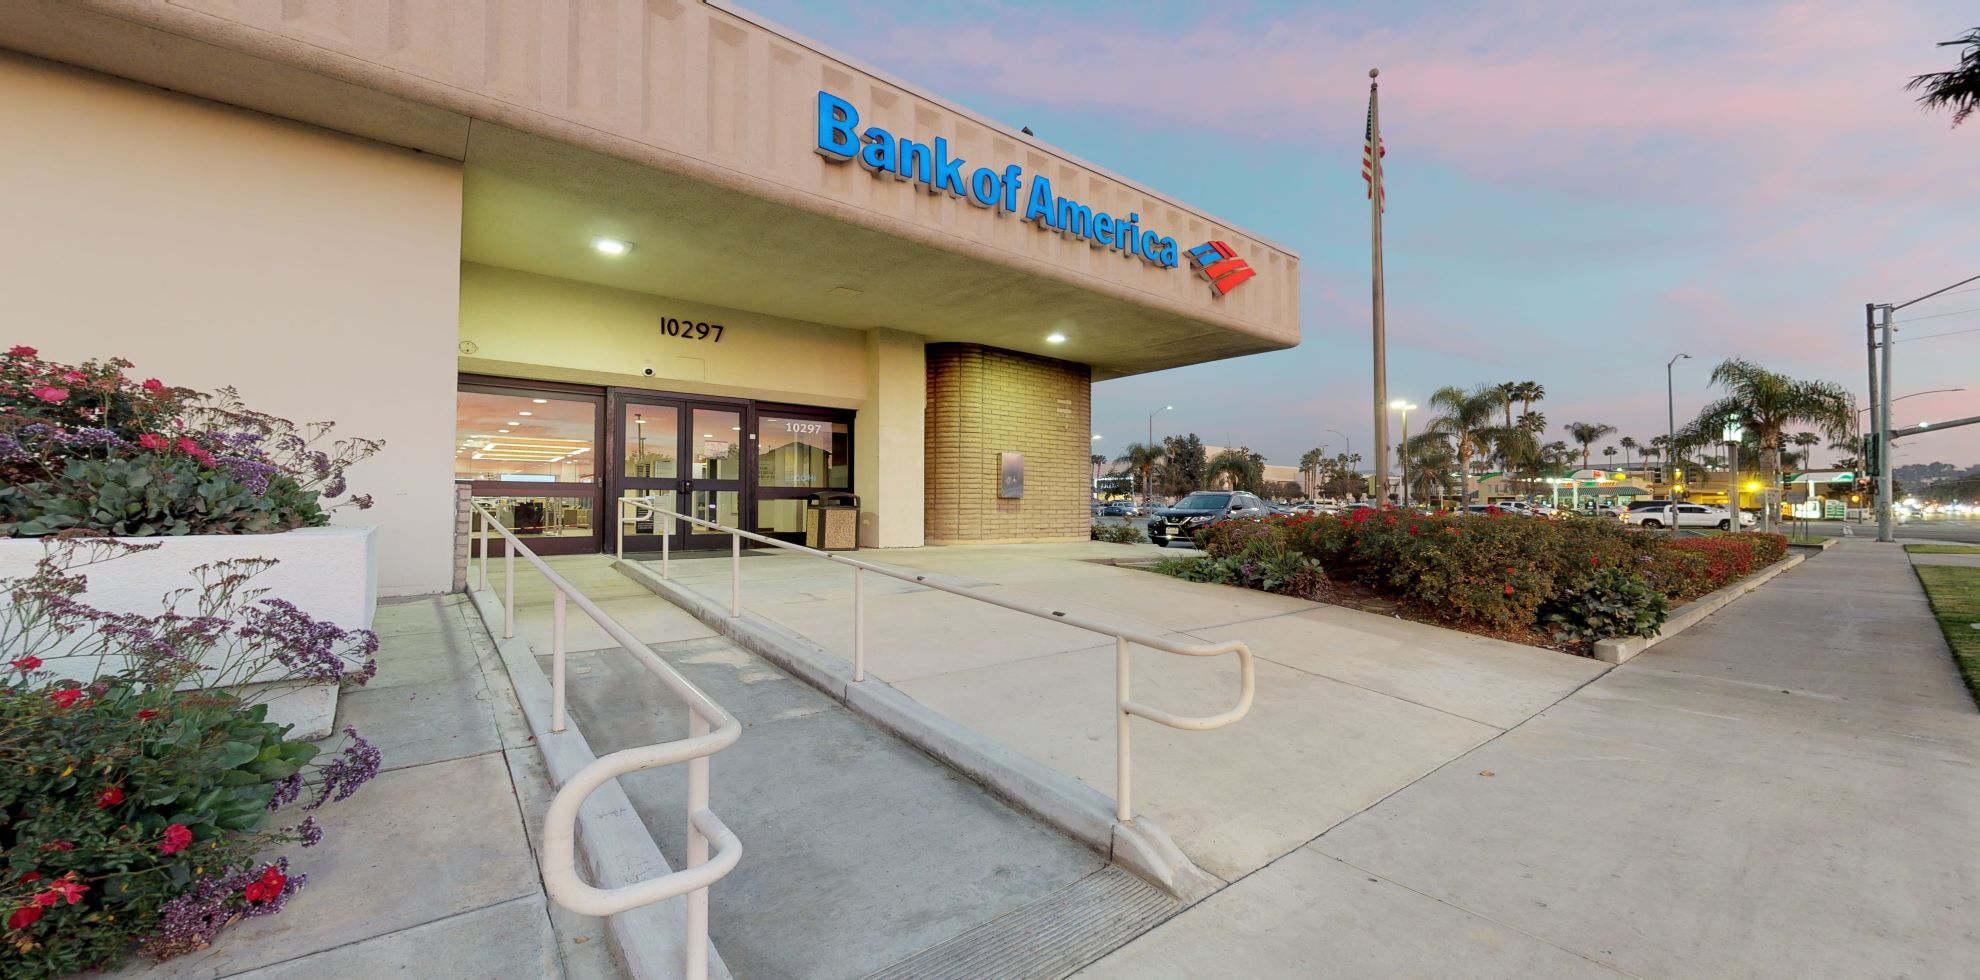 Bank of America financial center with drive-thru ATM | 10297 Magnolia Ave, Riverside, CA 92503